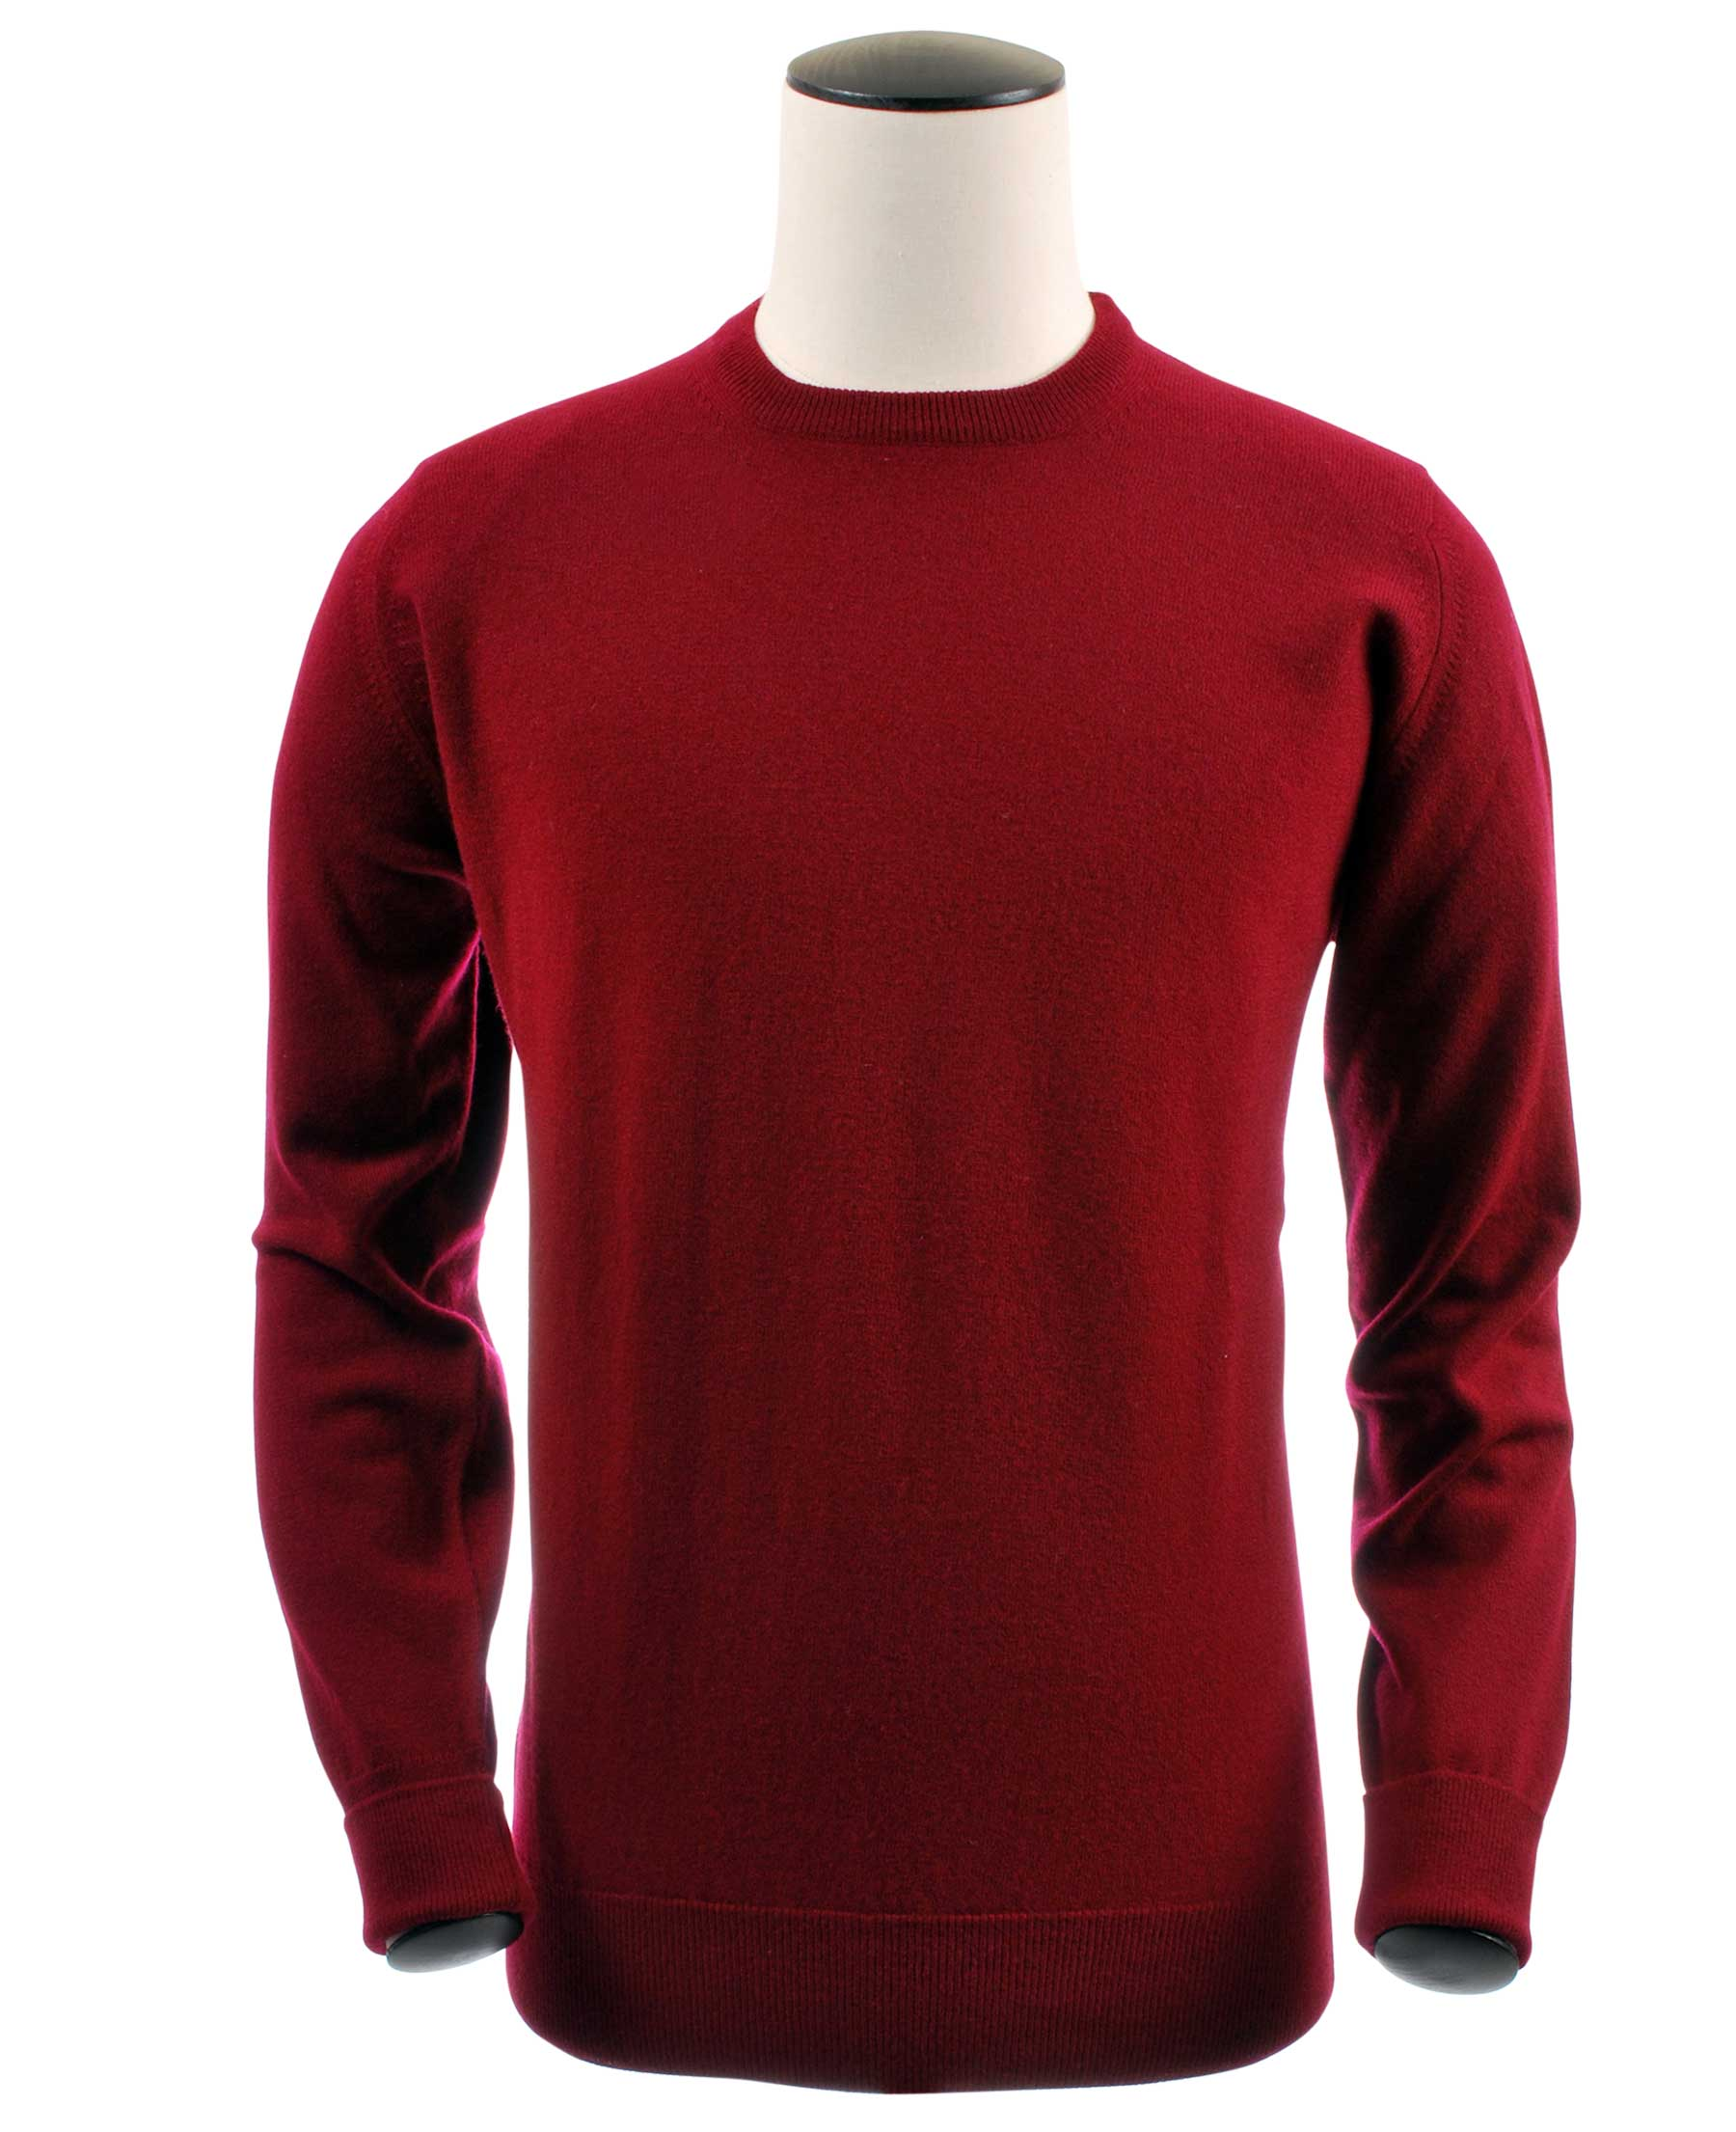 pull ras-de-cou, couleur claret en 100% geelong,Richie - Vêtements laine geelong